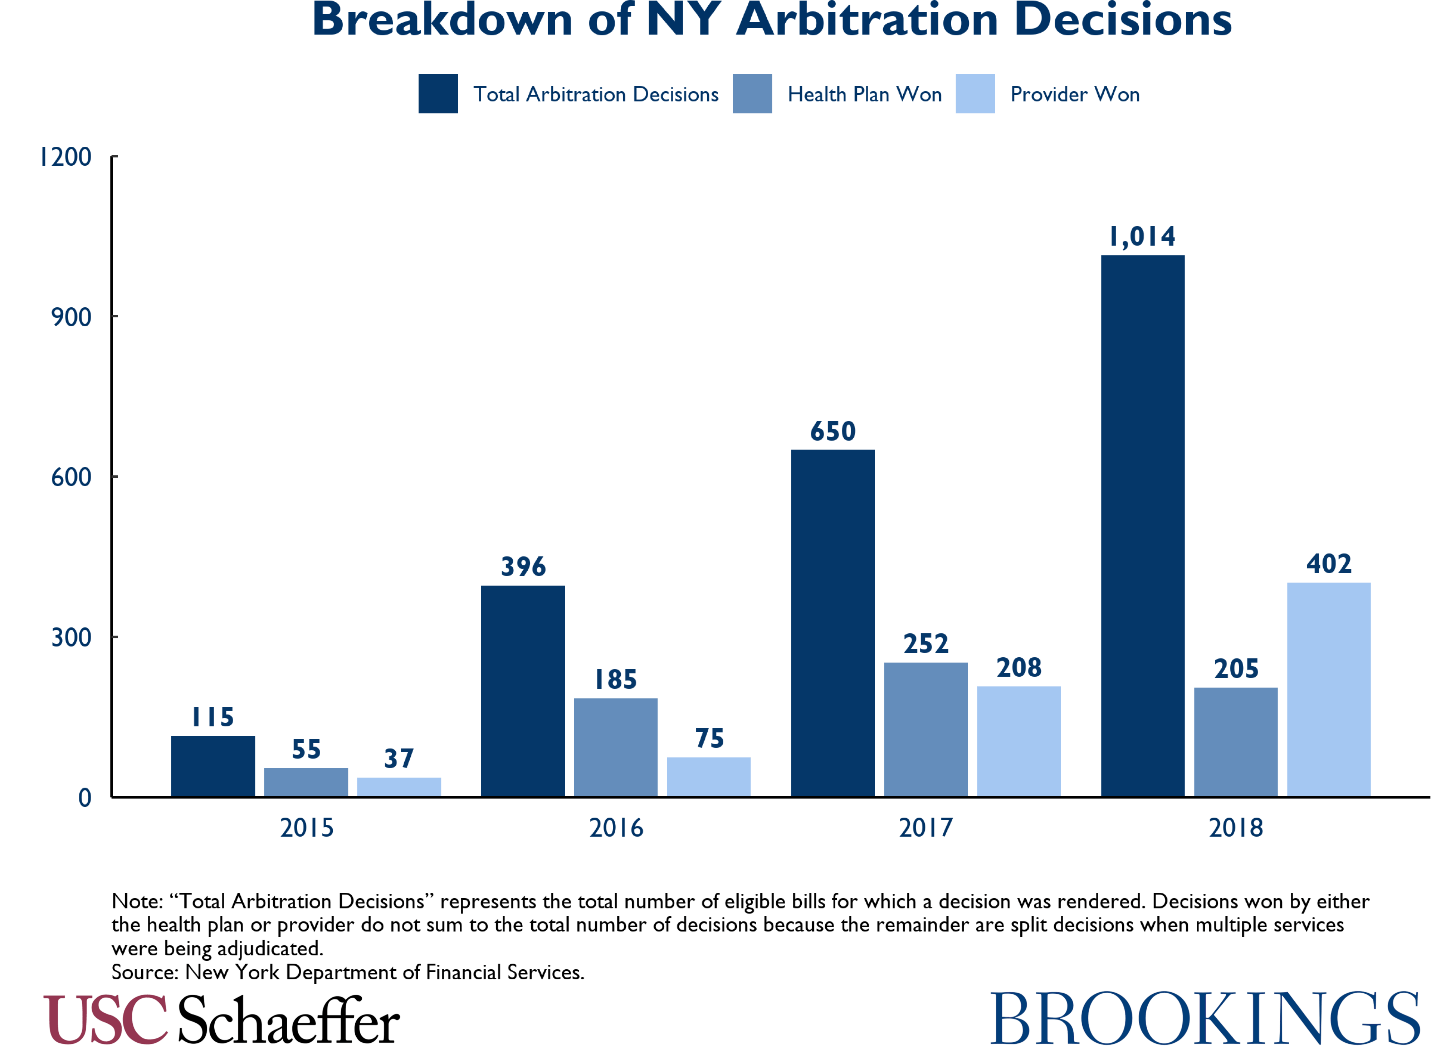 Breakdown if NY arbitration decisions